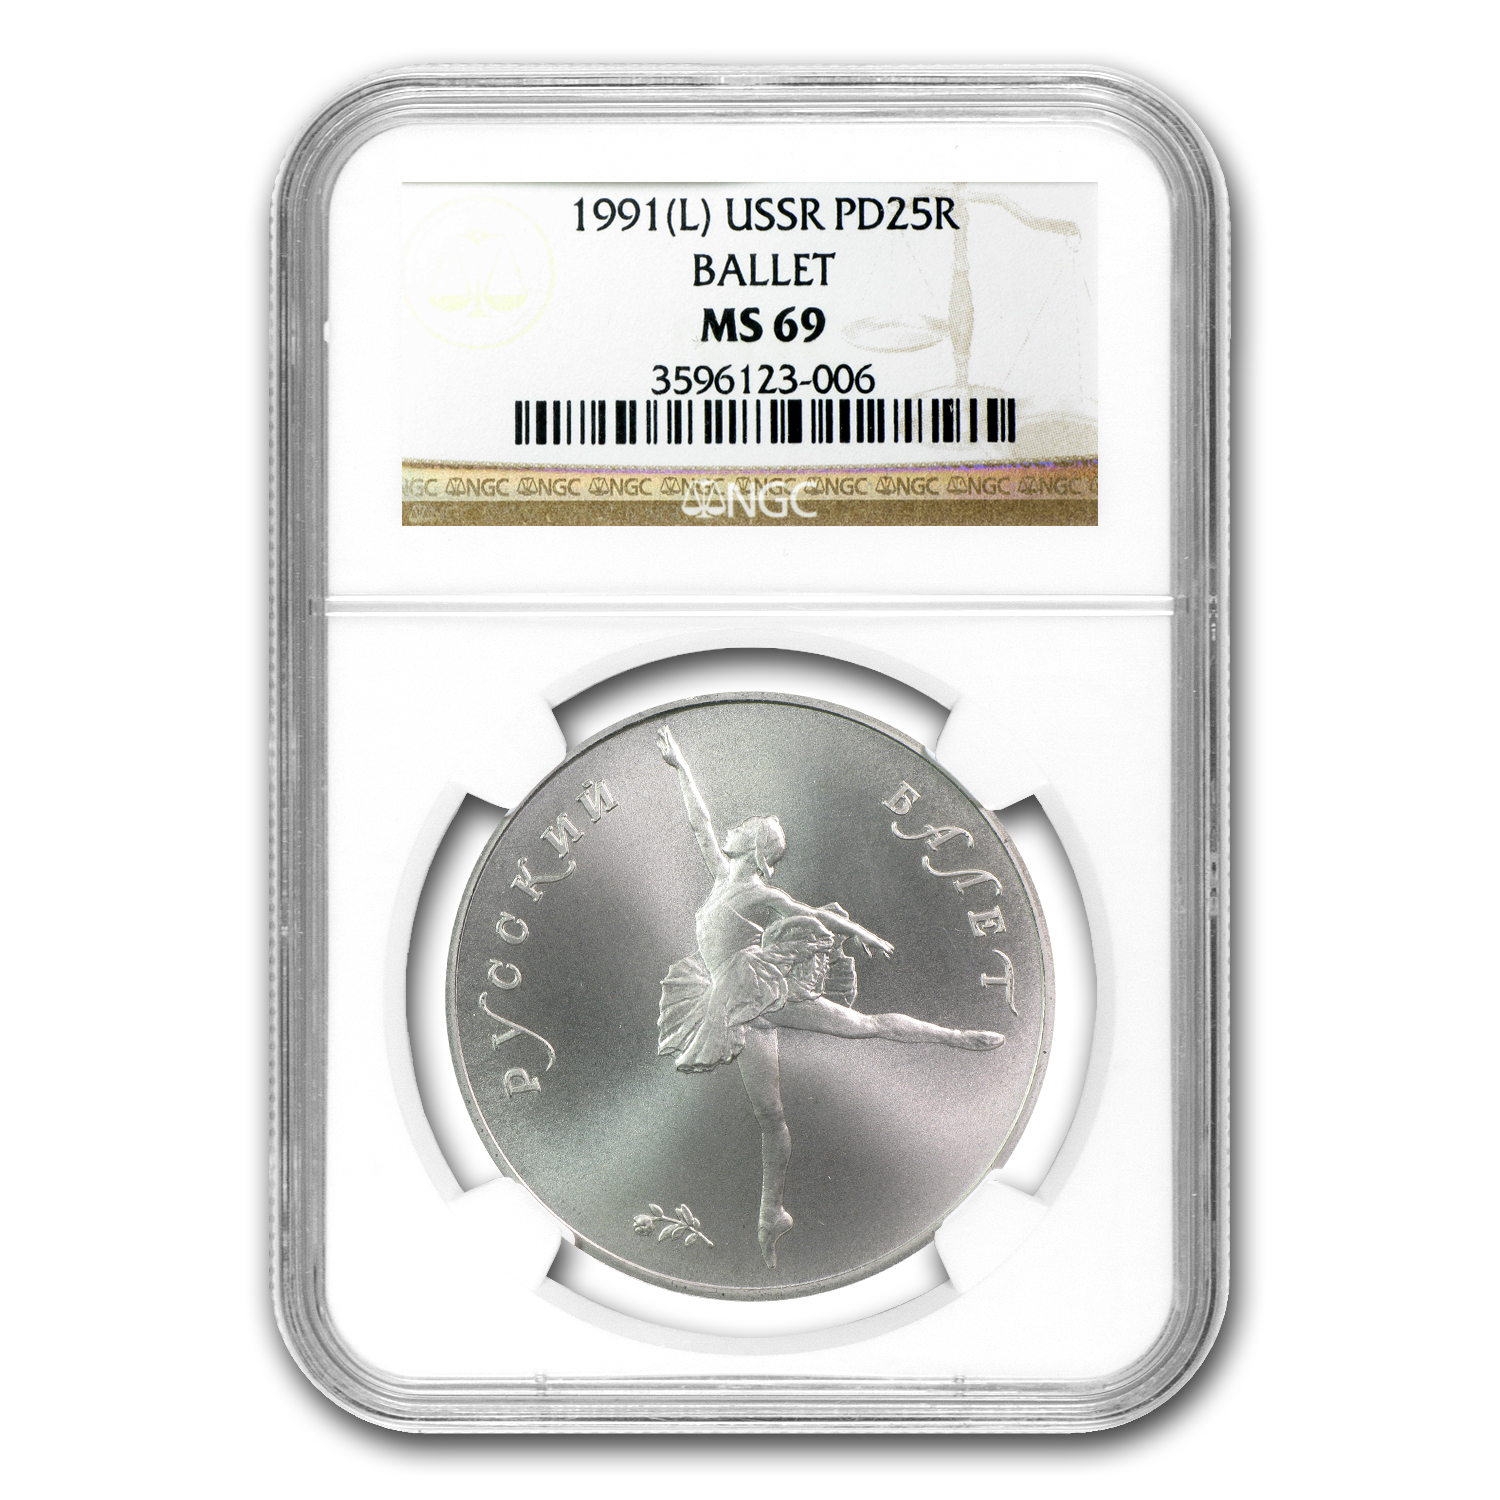 1991 1 oz Palladium Russian Ballerina MS-69 NGC